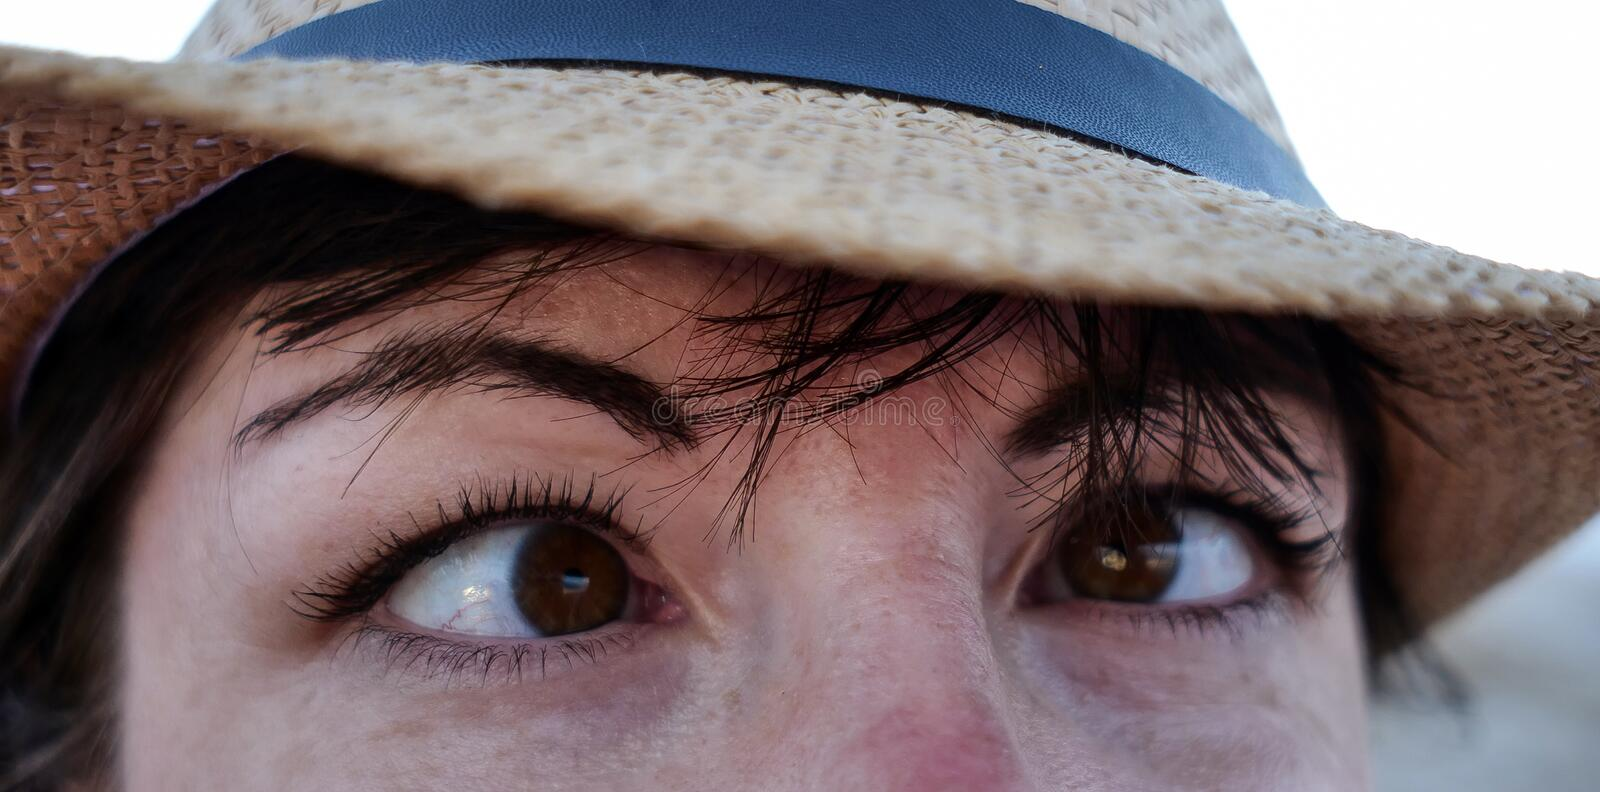 Girl fooling in front of the camera brings eyes together, close-up royalty free stock images